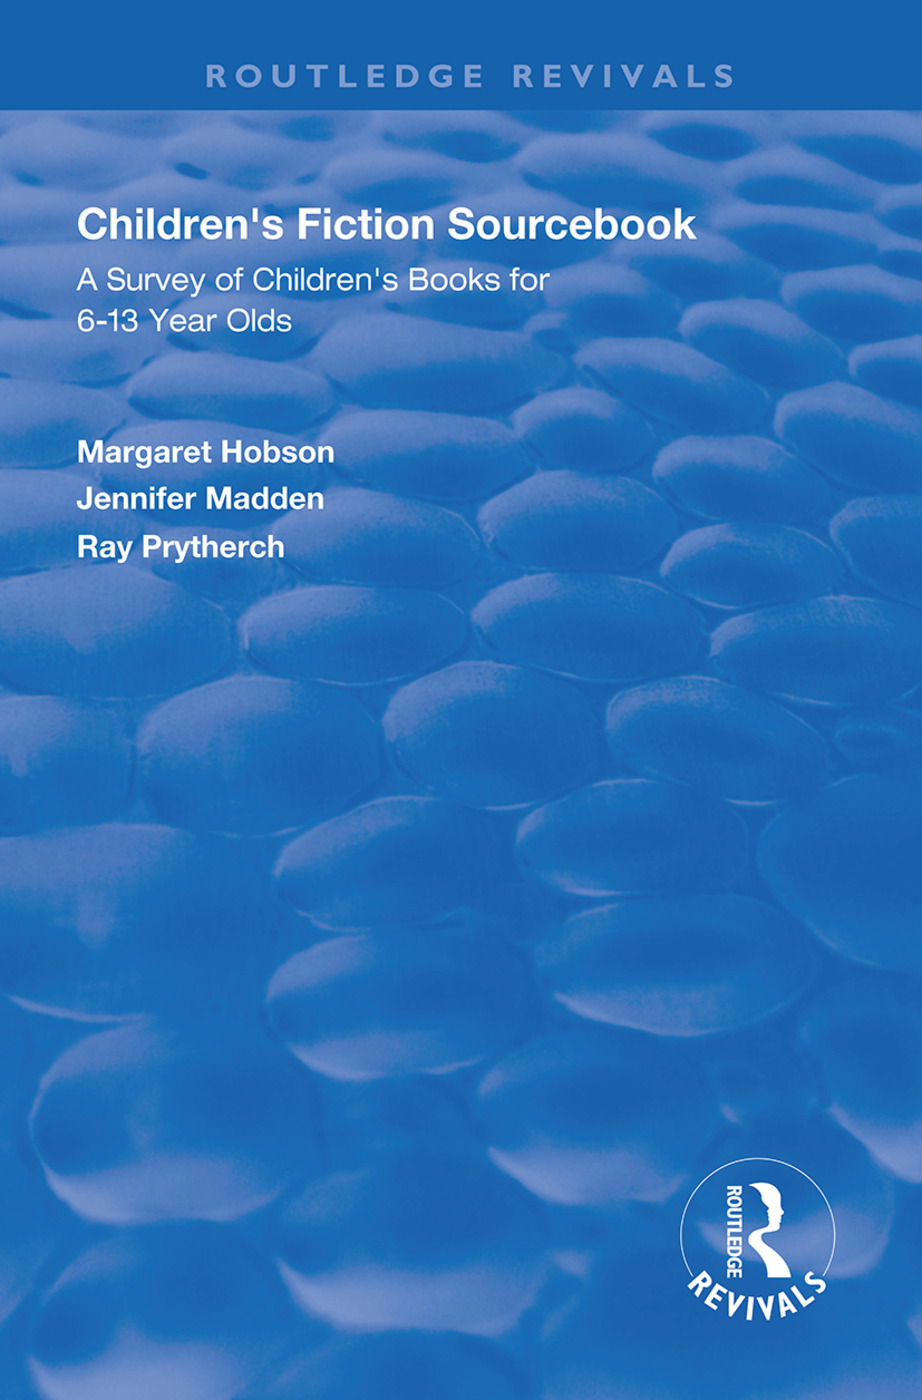 Children's Fiction Sourcebook: A Survey of Children's Books for 6-13 Year Olds book cover